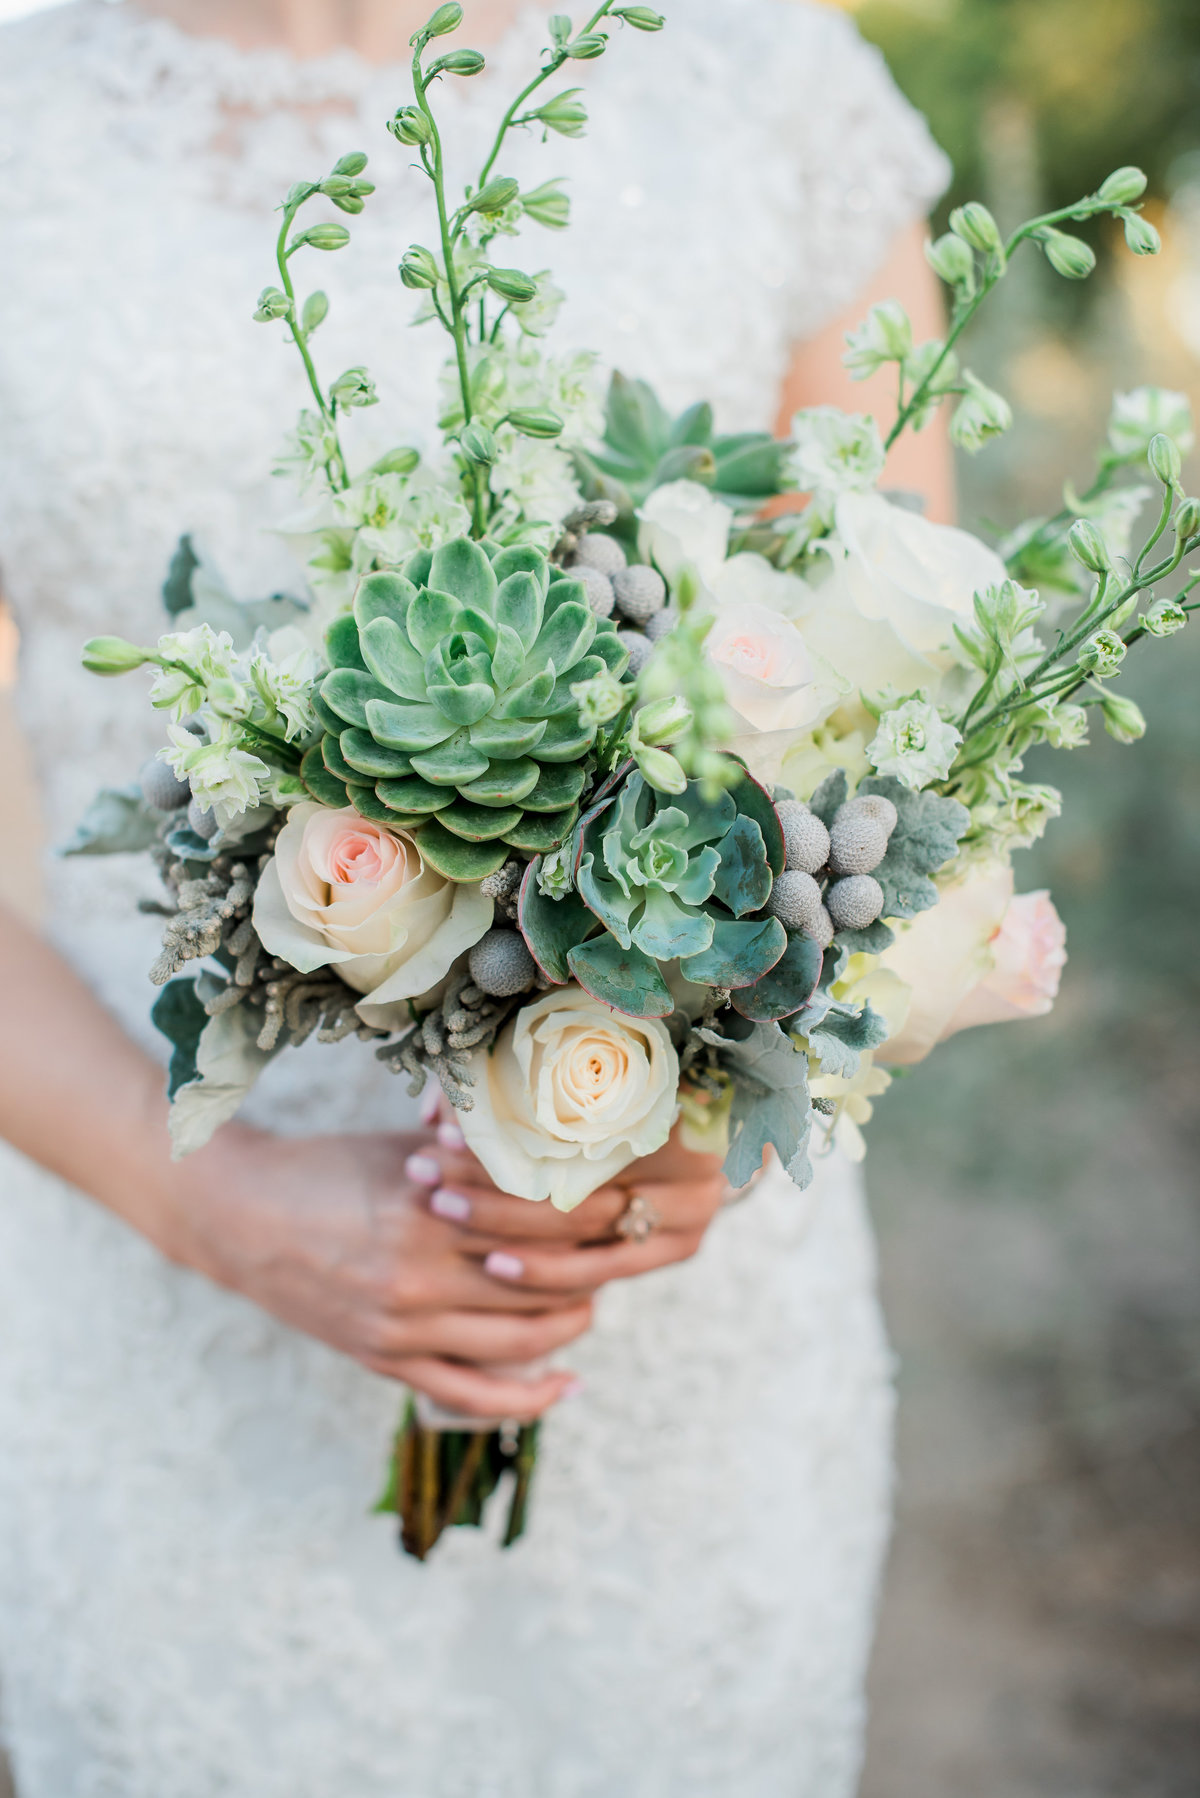 ZufeltWedding- bouquet